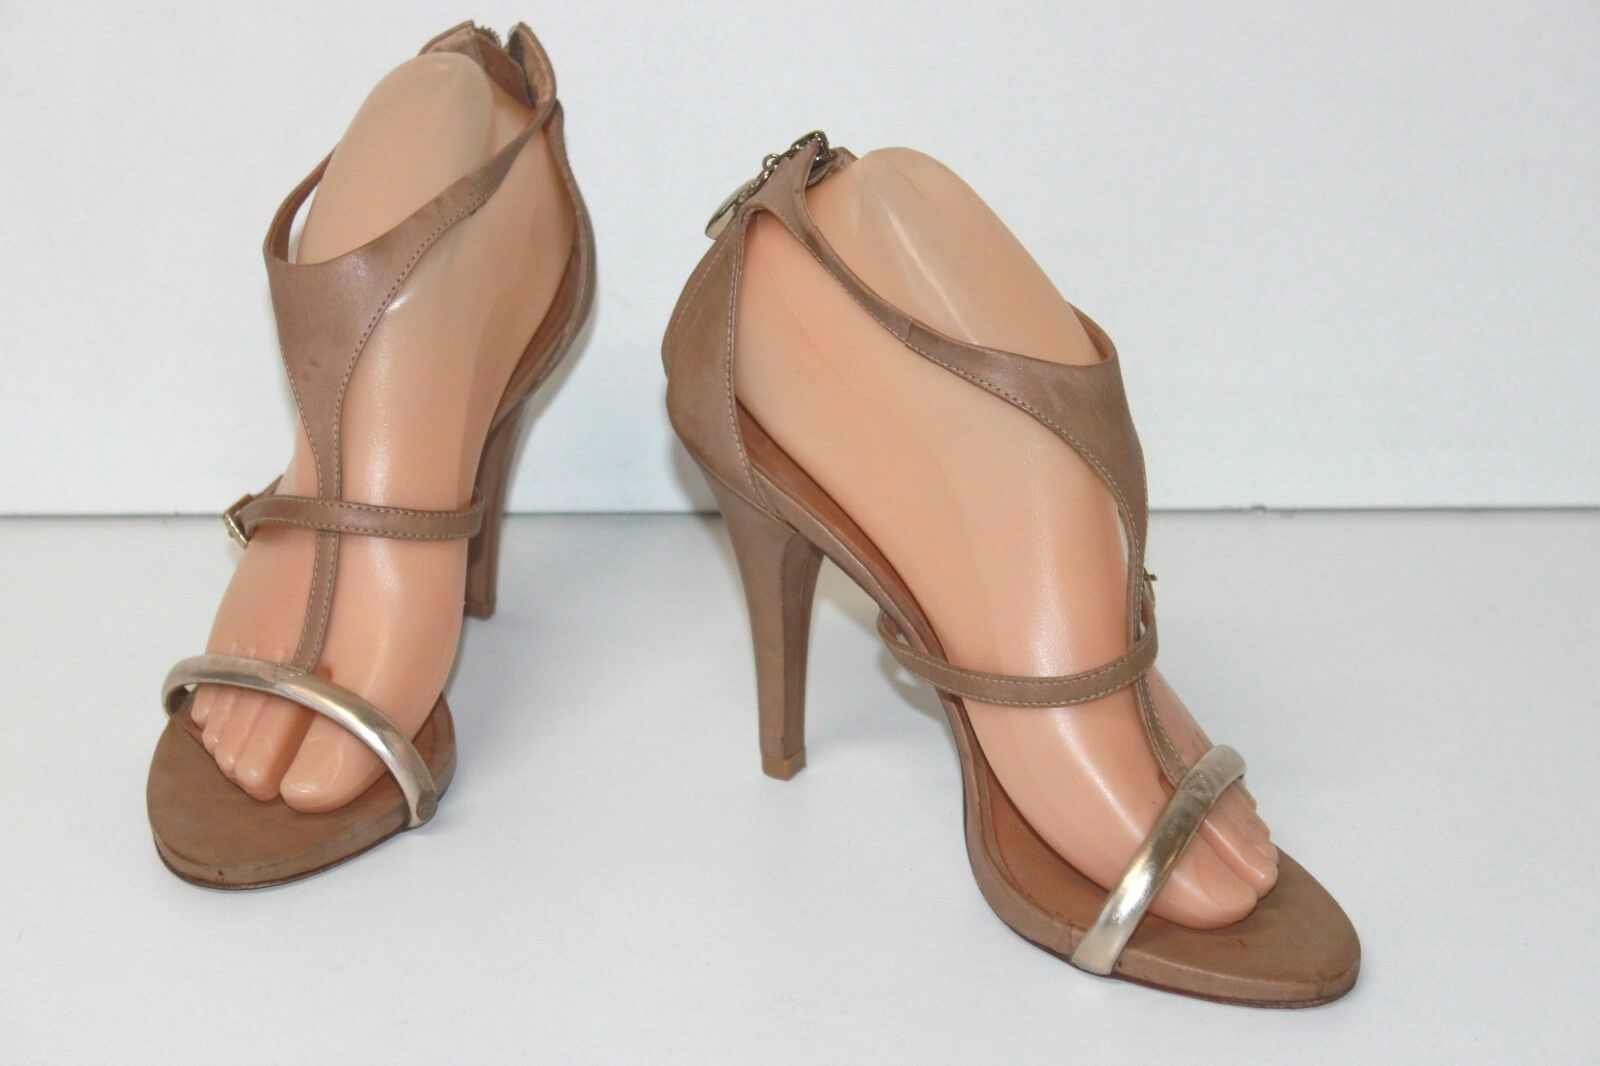 MARCO Sandals All Leather Beige Thongs Fine High Heels T 39 VERY GOOD CONDITION